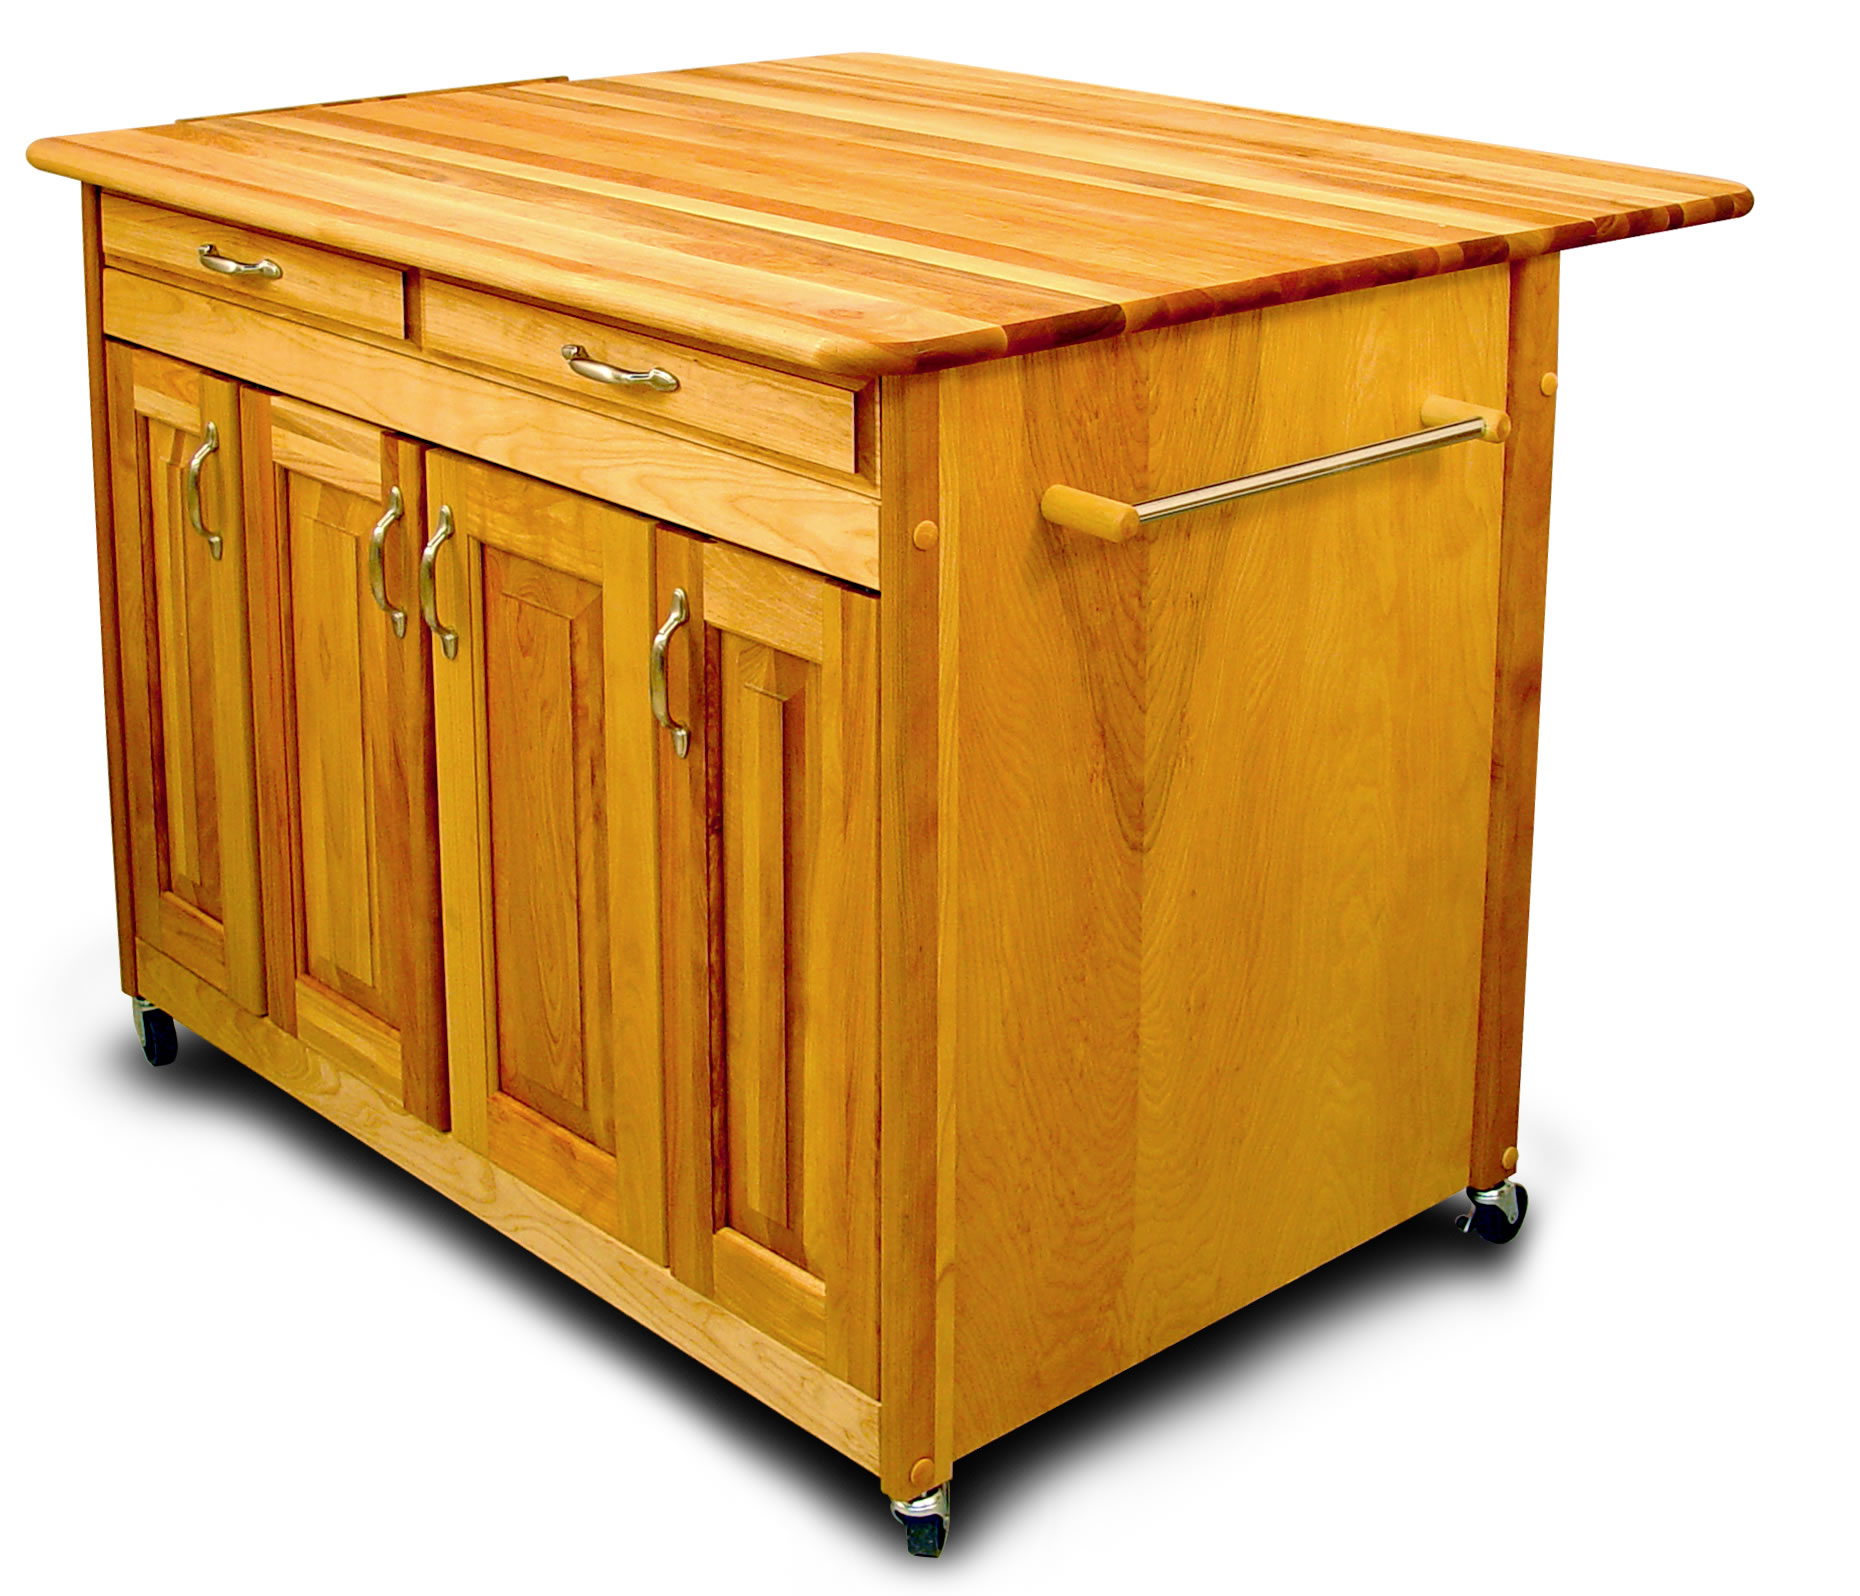 Movable Kitchen Islands Rolling on Wheels